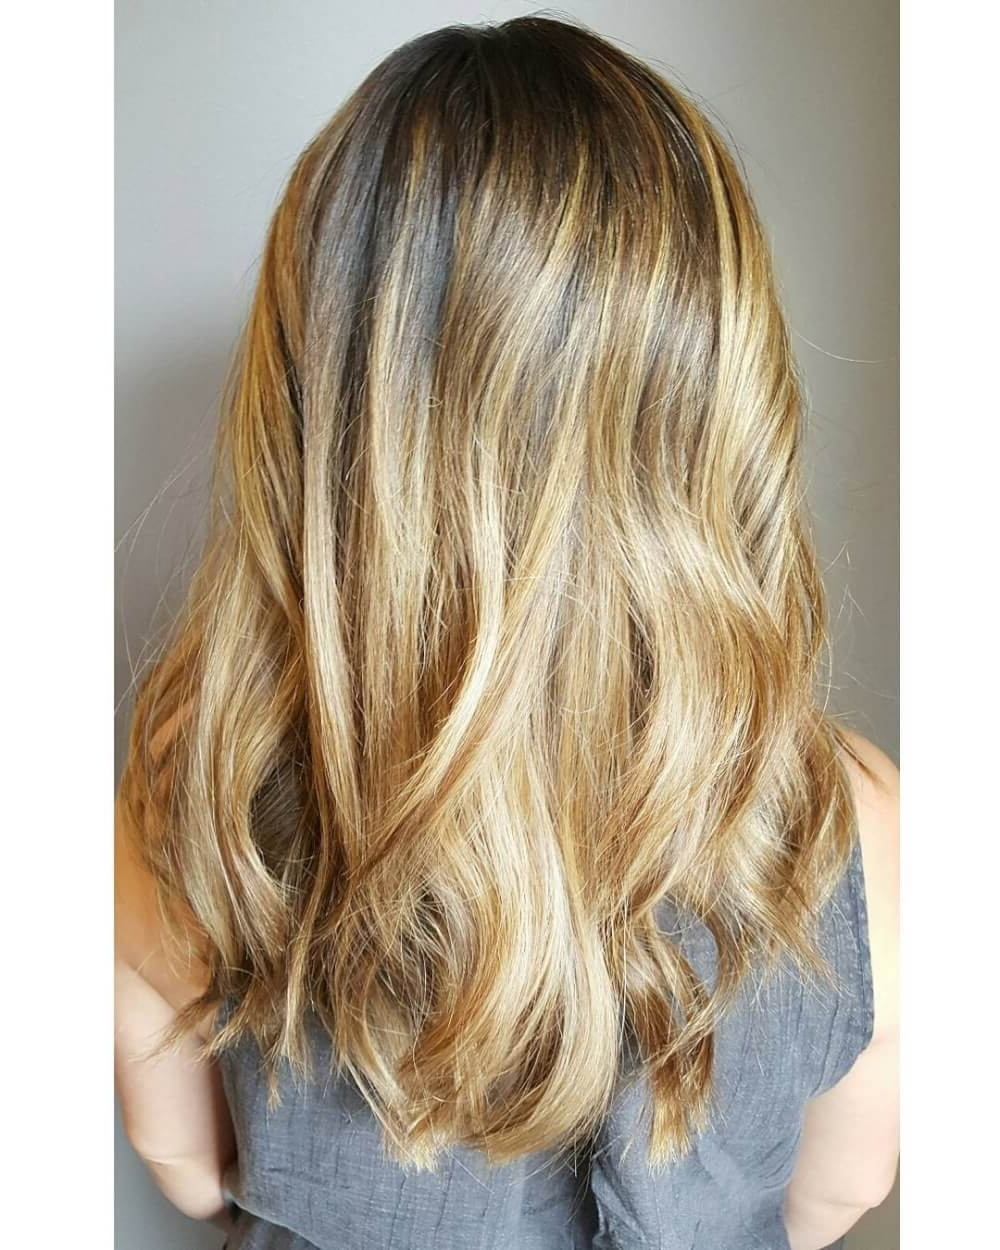 38 Top Blonde Highlights Of 2018 – Platinum, Ash, Dirty, Honey & Dark With 2017 Light Chocolate And Vanilla Blonde Hairstyles (View 3 of 20)